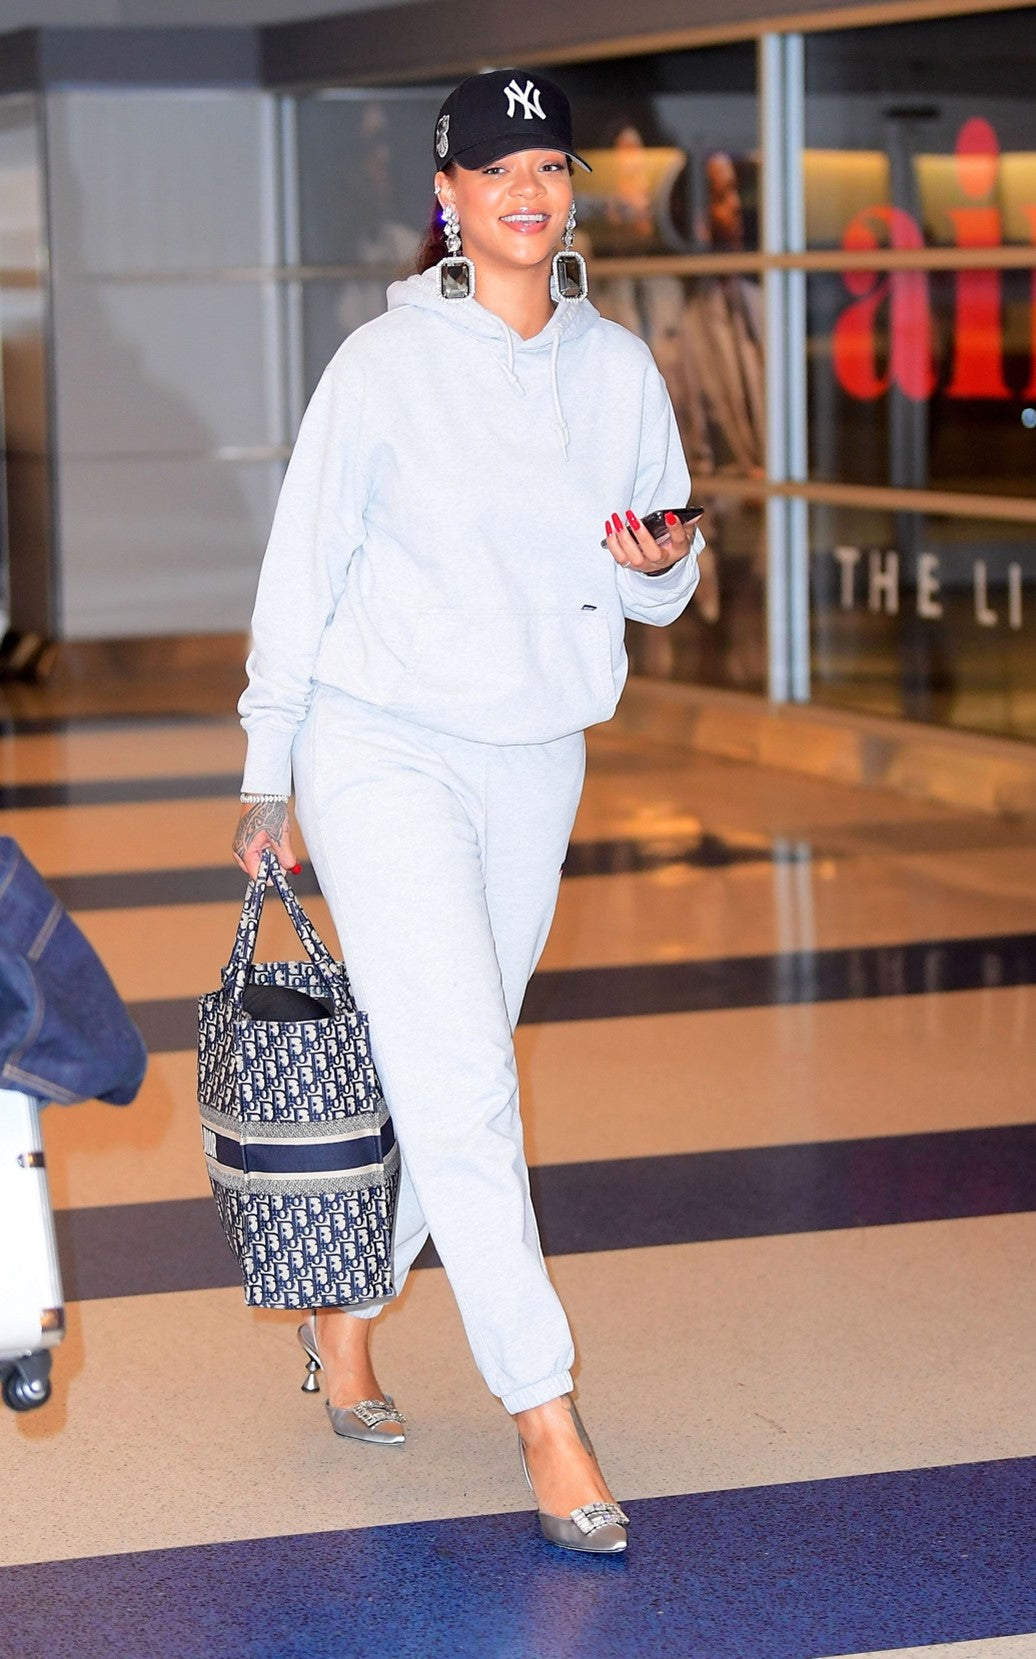 Photograph of Rihanna wearing extreme pendant earrings, silver high heels and a white tracksuit